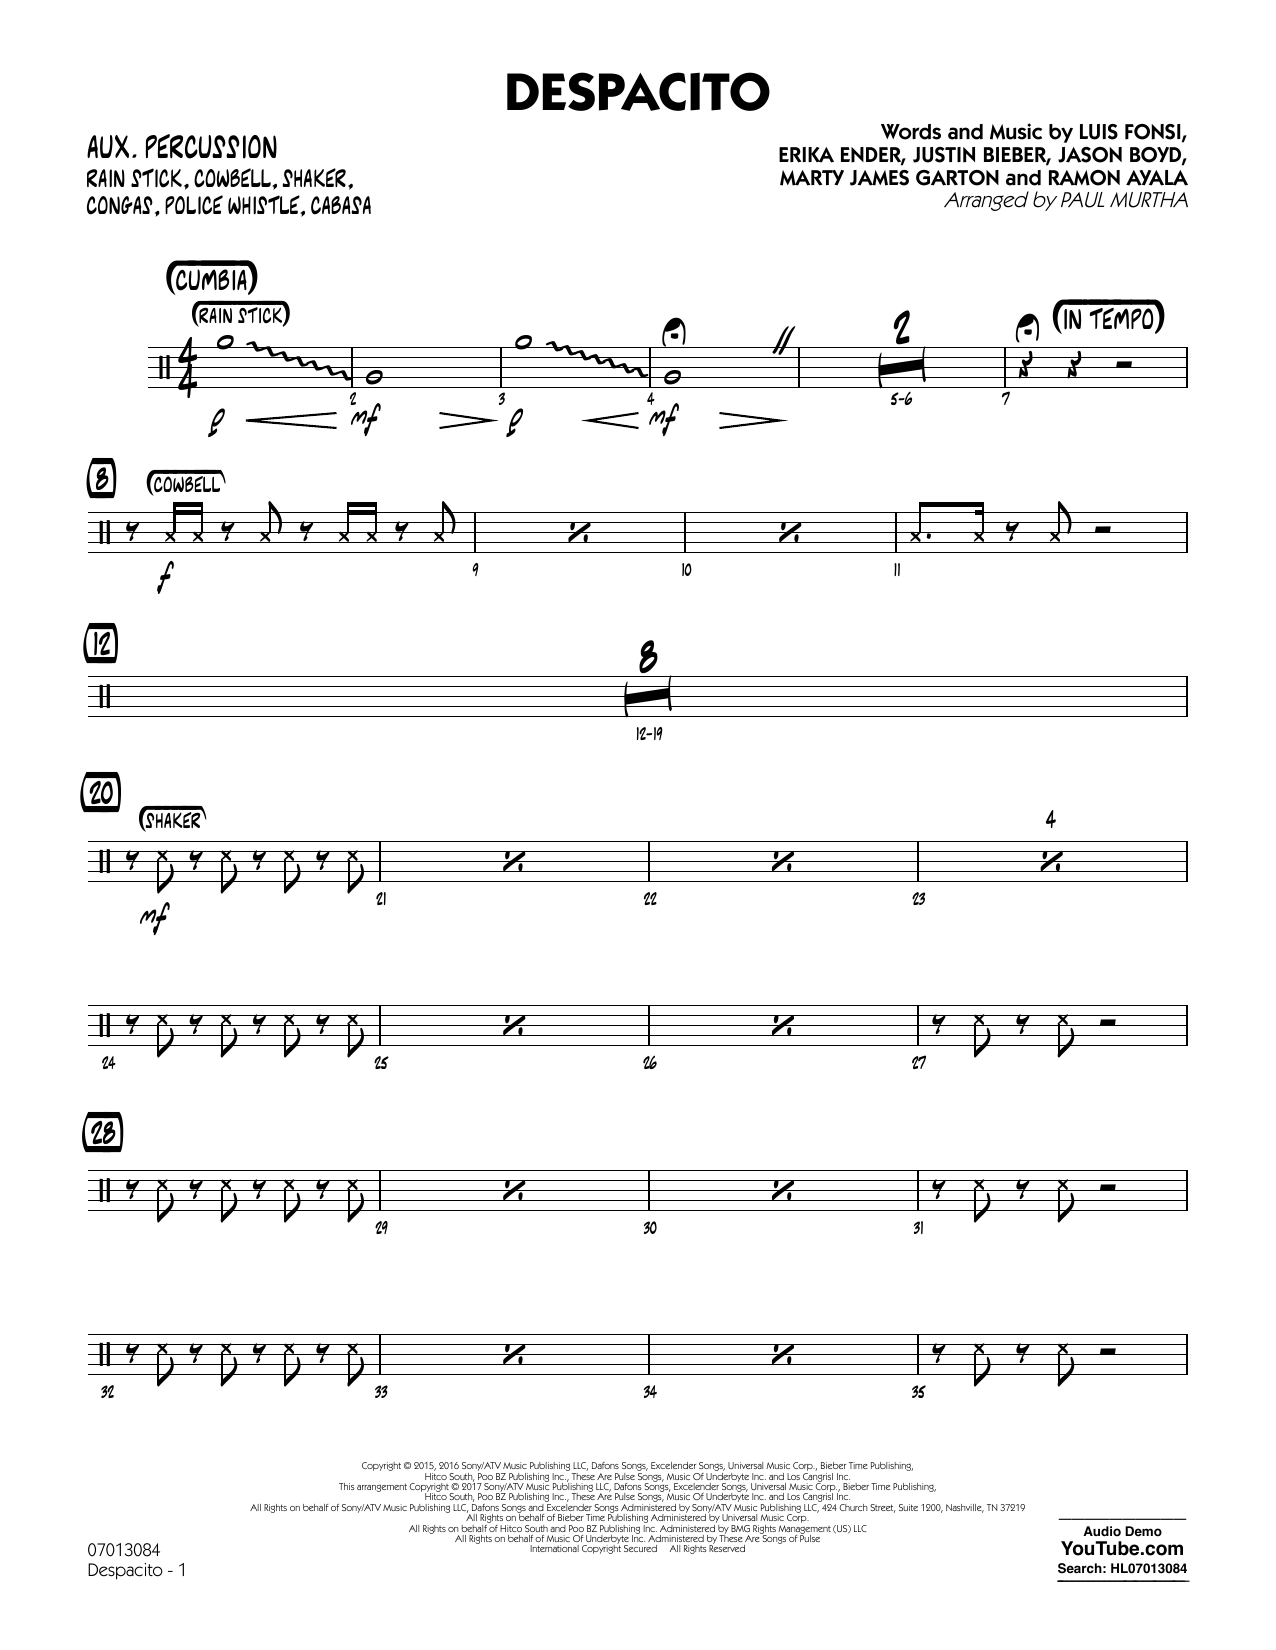 Luis Fonsi & Daddy Yankee feat. Justin Bieber Despacito (arr. Paul Murtha) - Aux Percussion sheet music notes printable PDF score